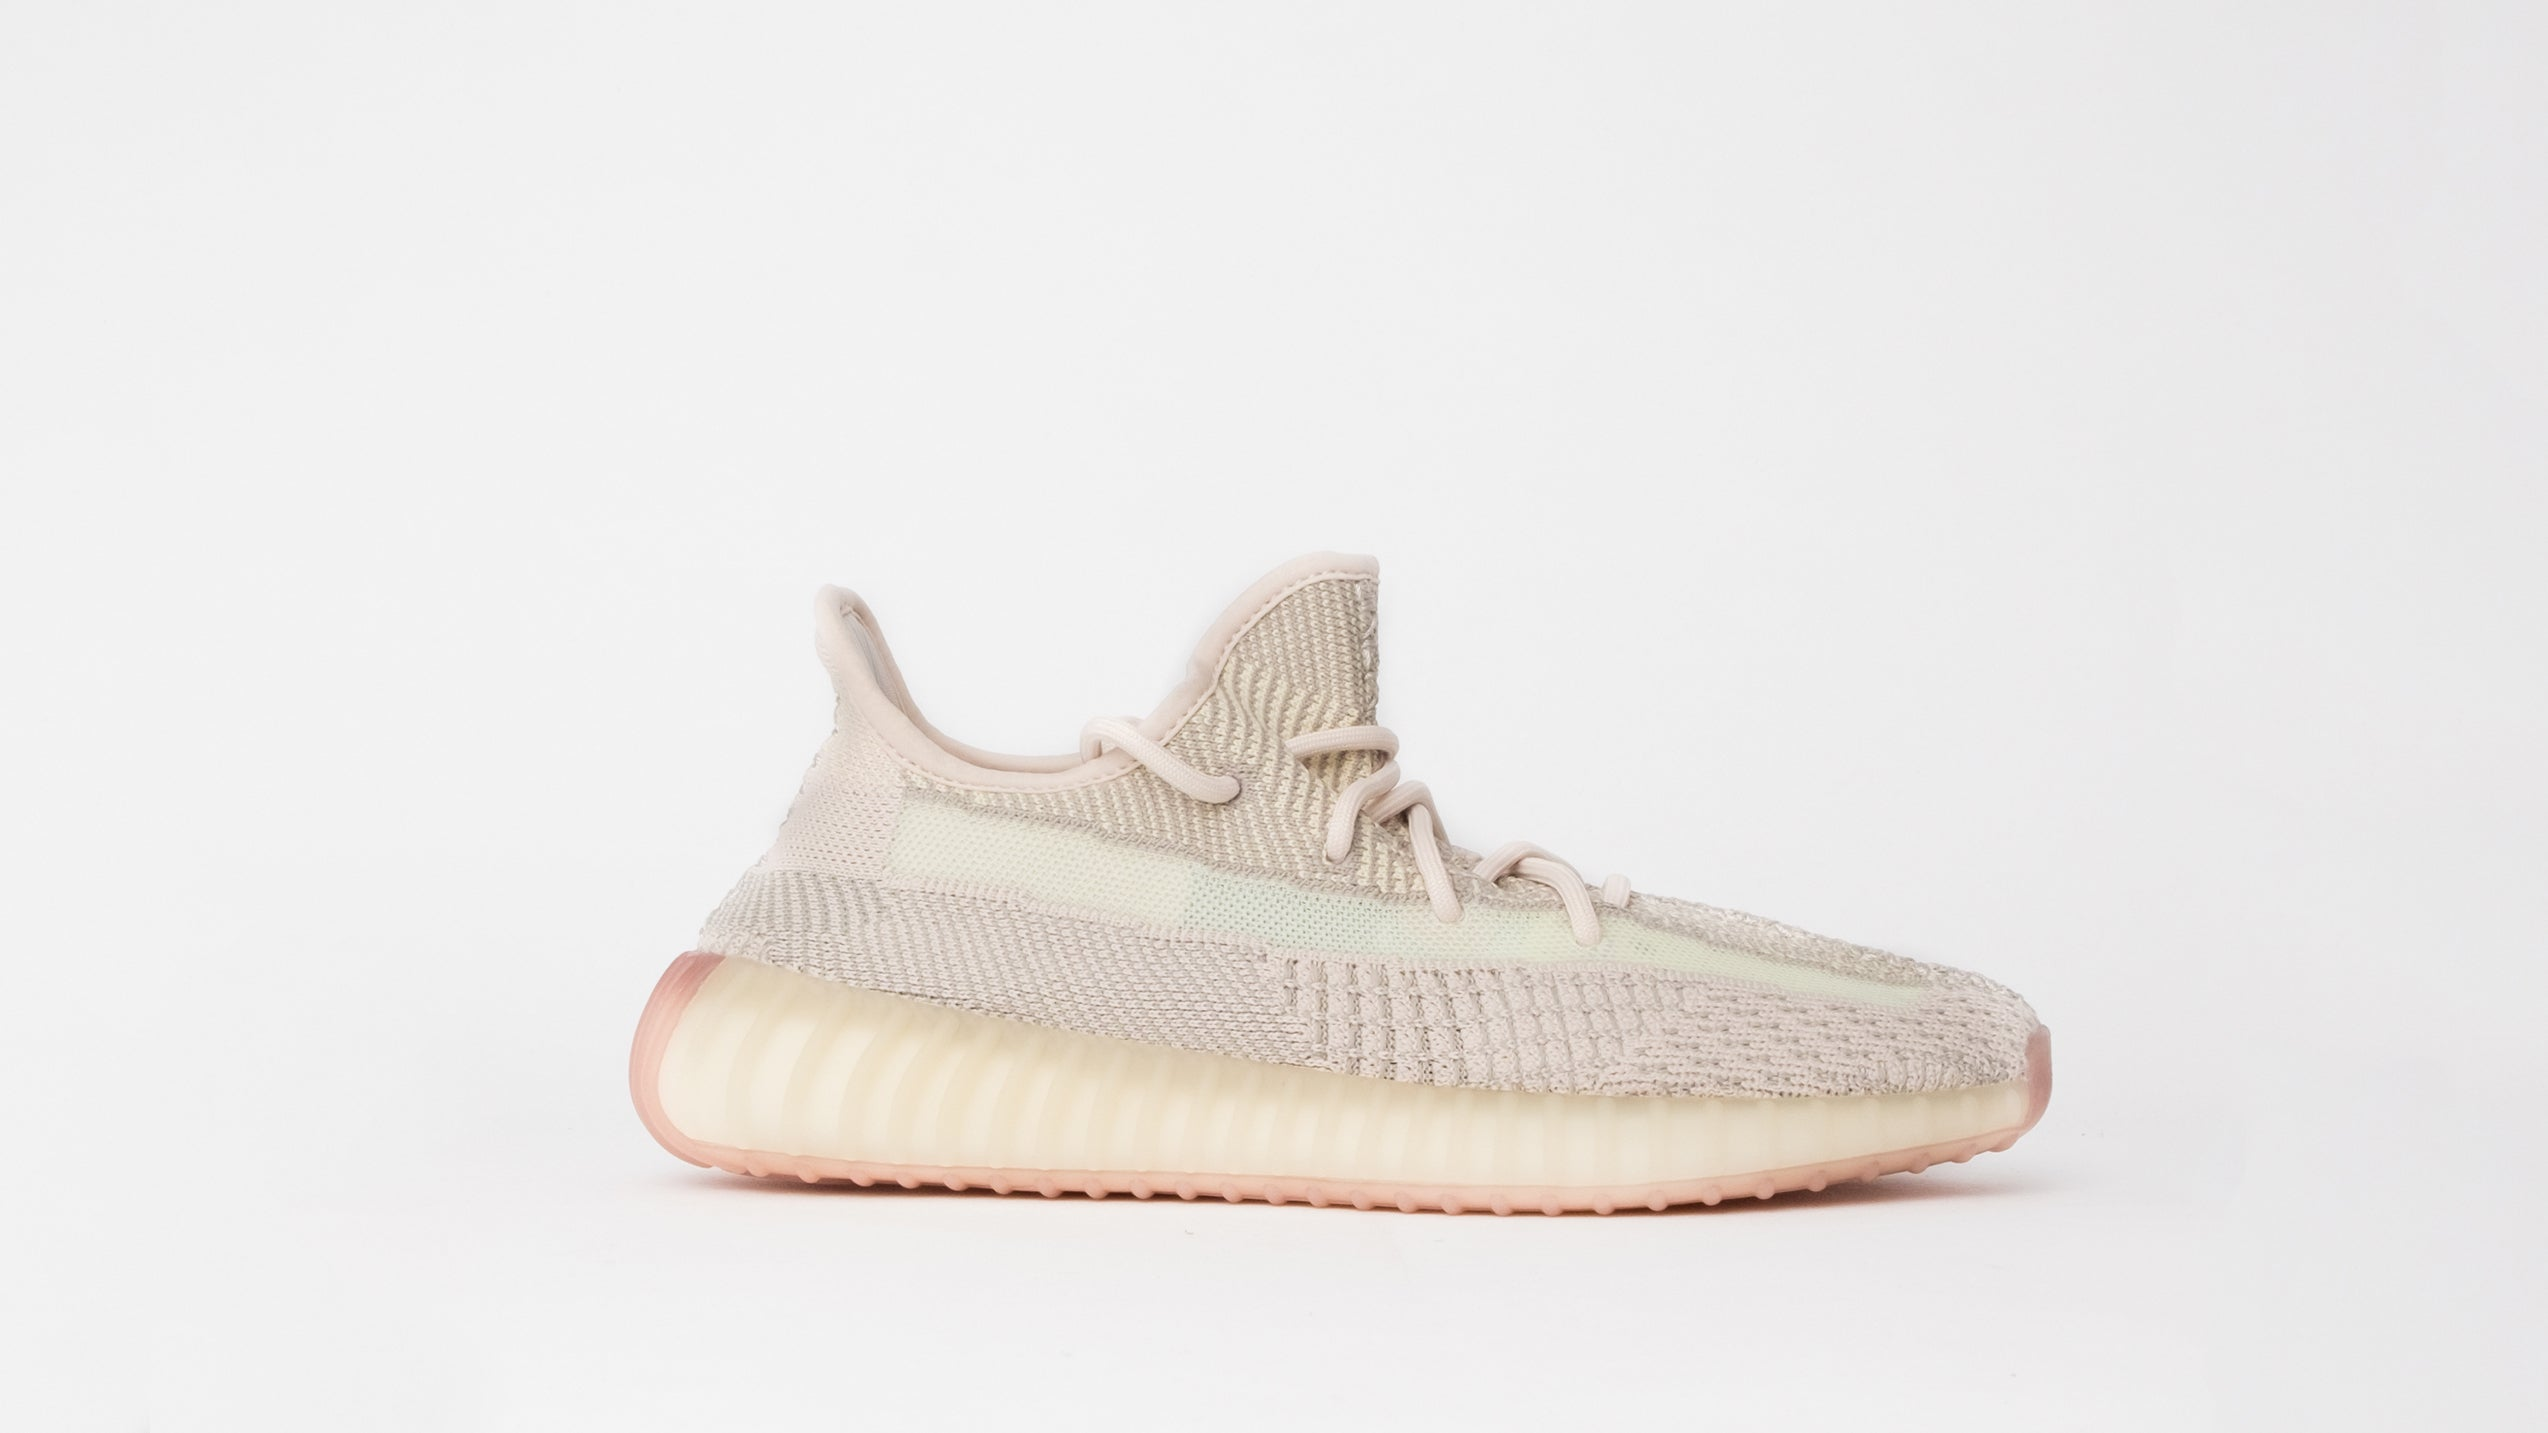 YEEZY BOOST 350 V2 CITRIN RAFFLE CLOSED